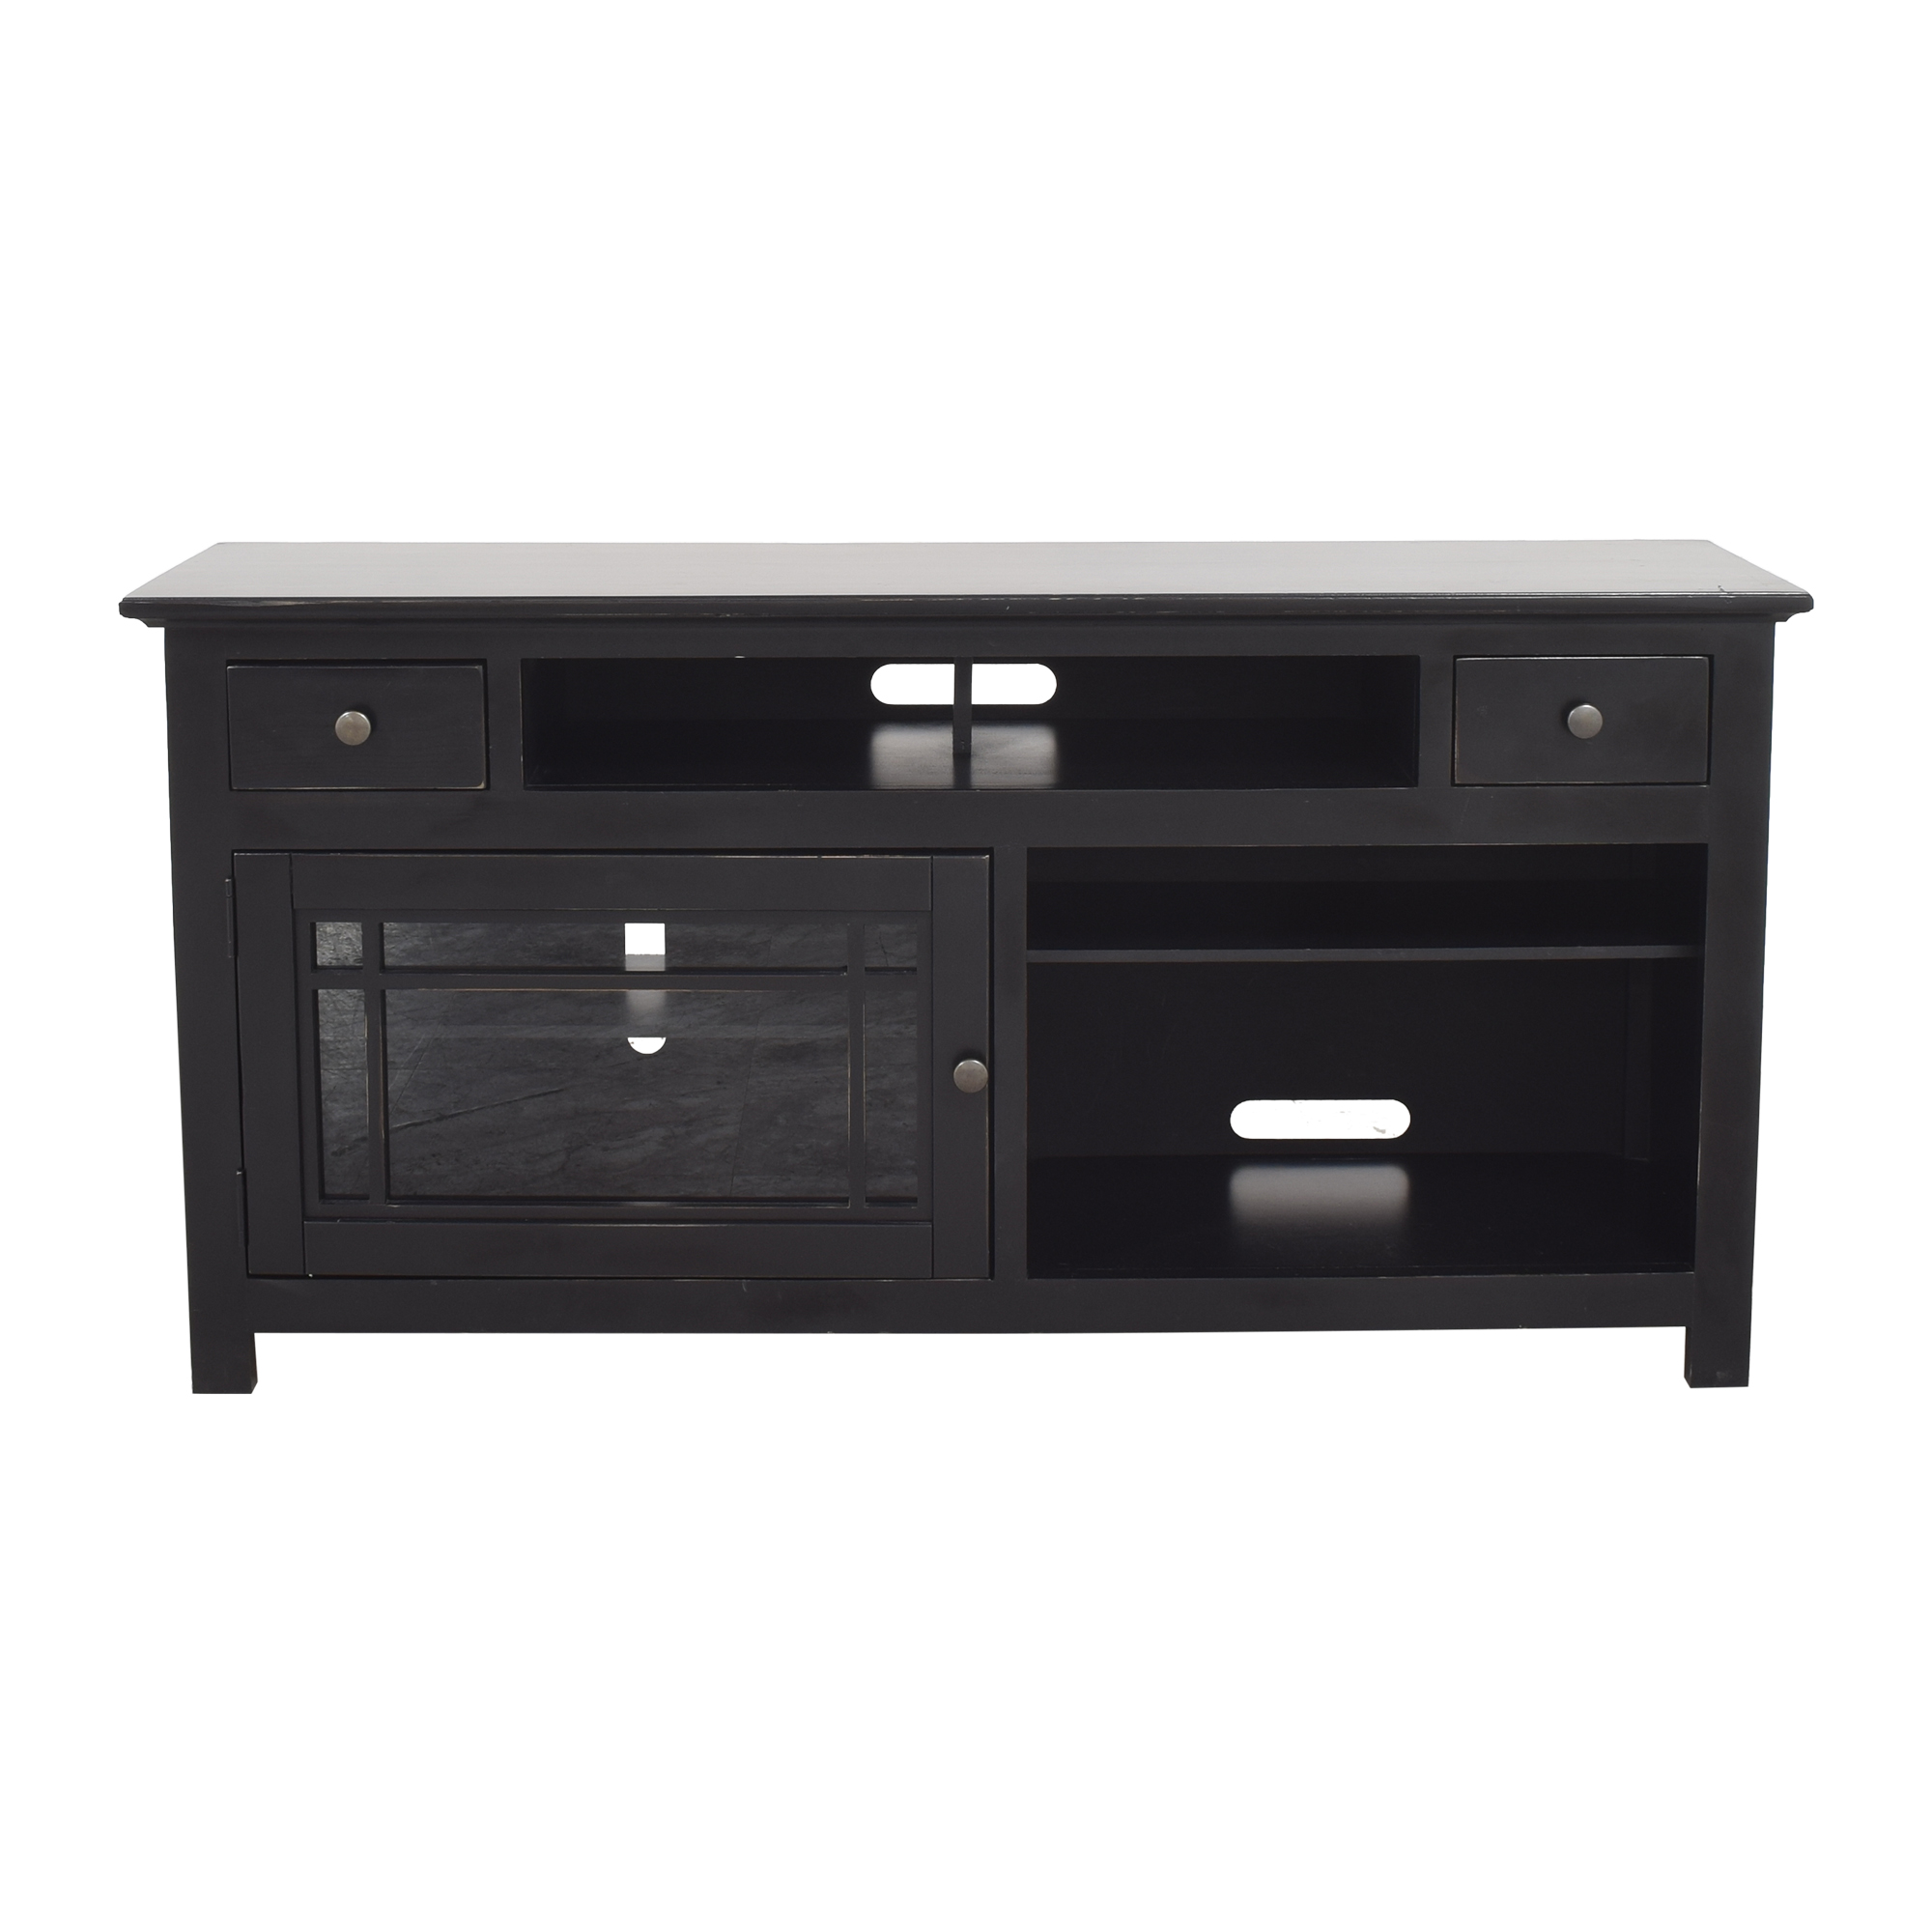 Progressive Furniture Emerson Hills Media Console Progressive Furniture